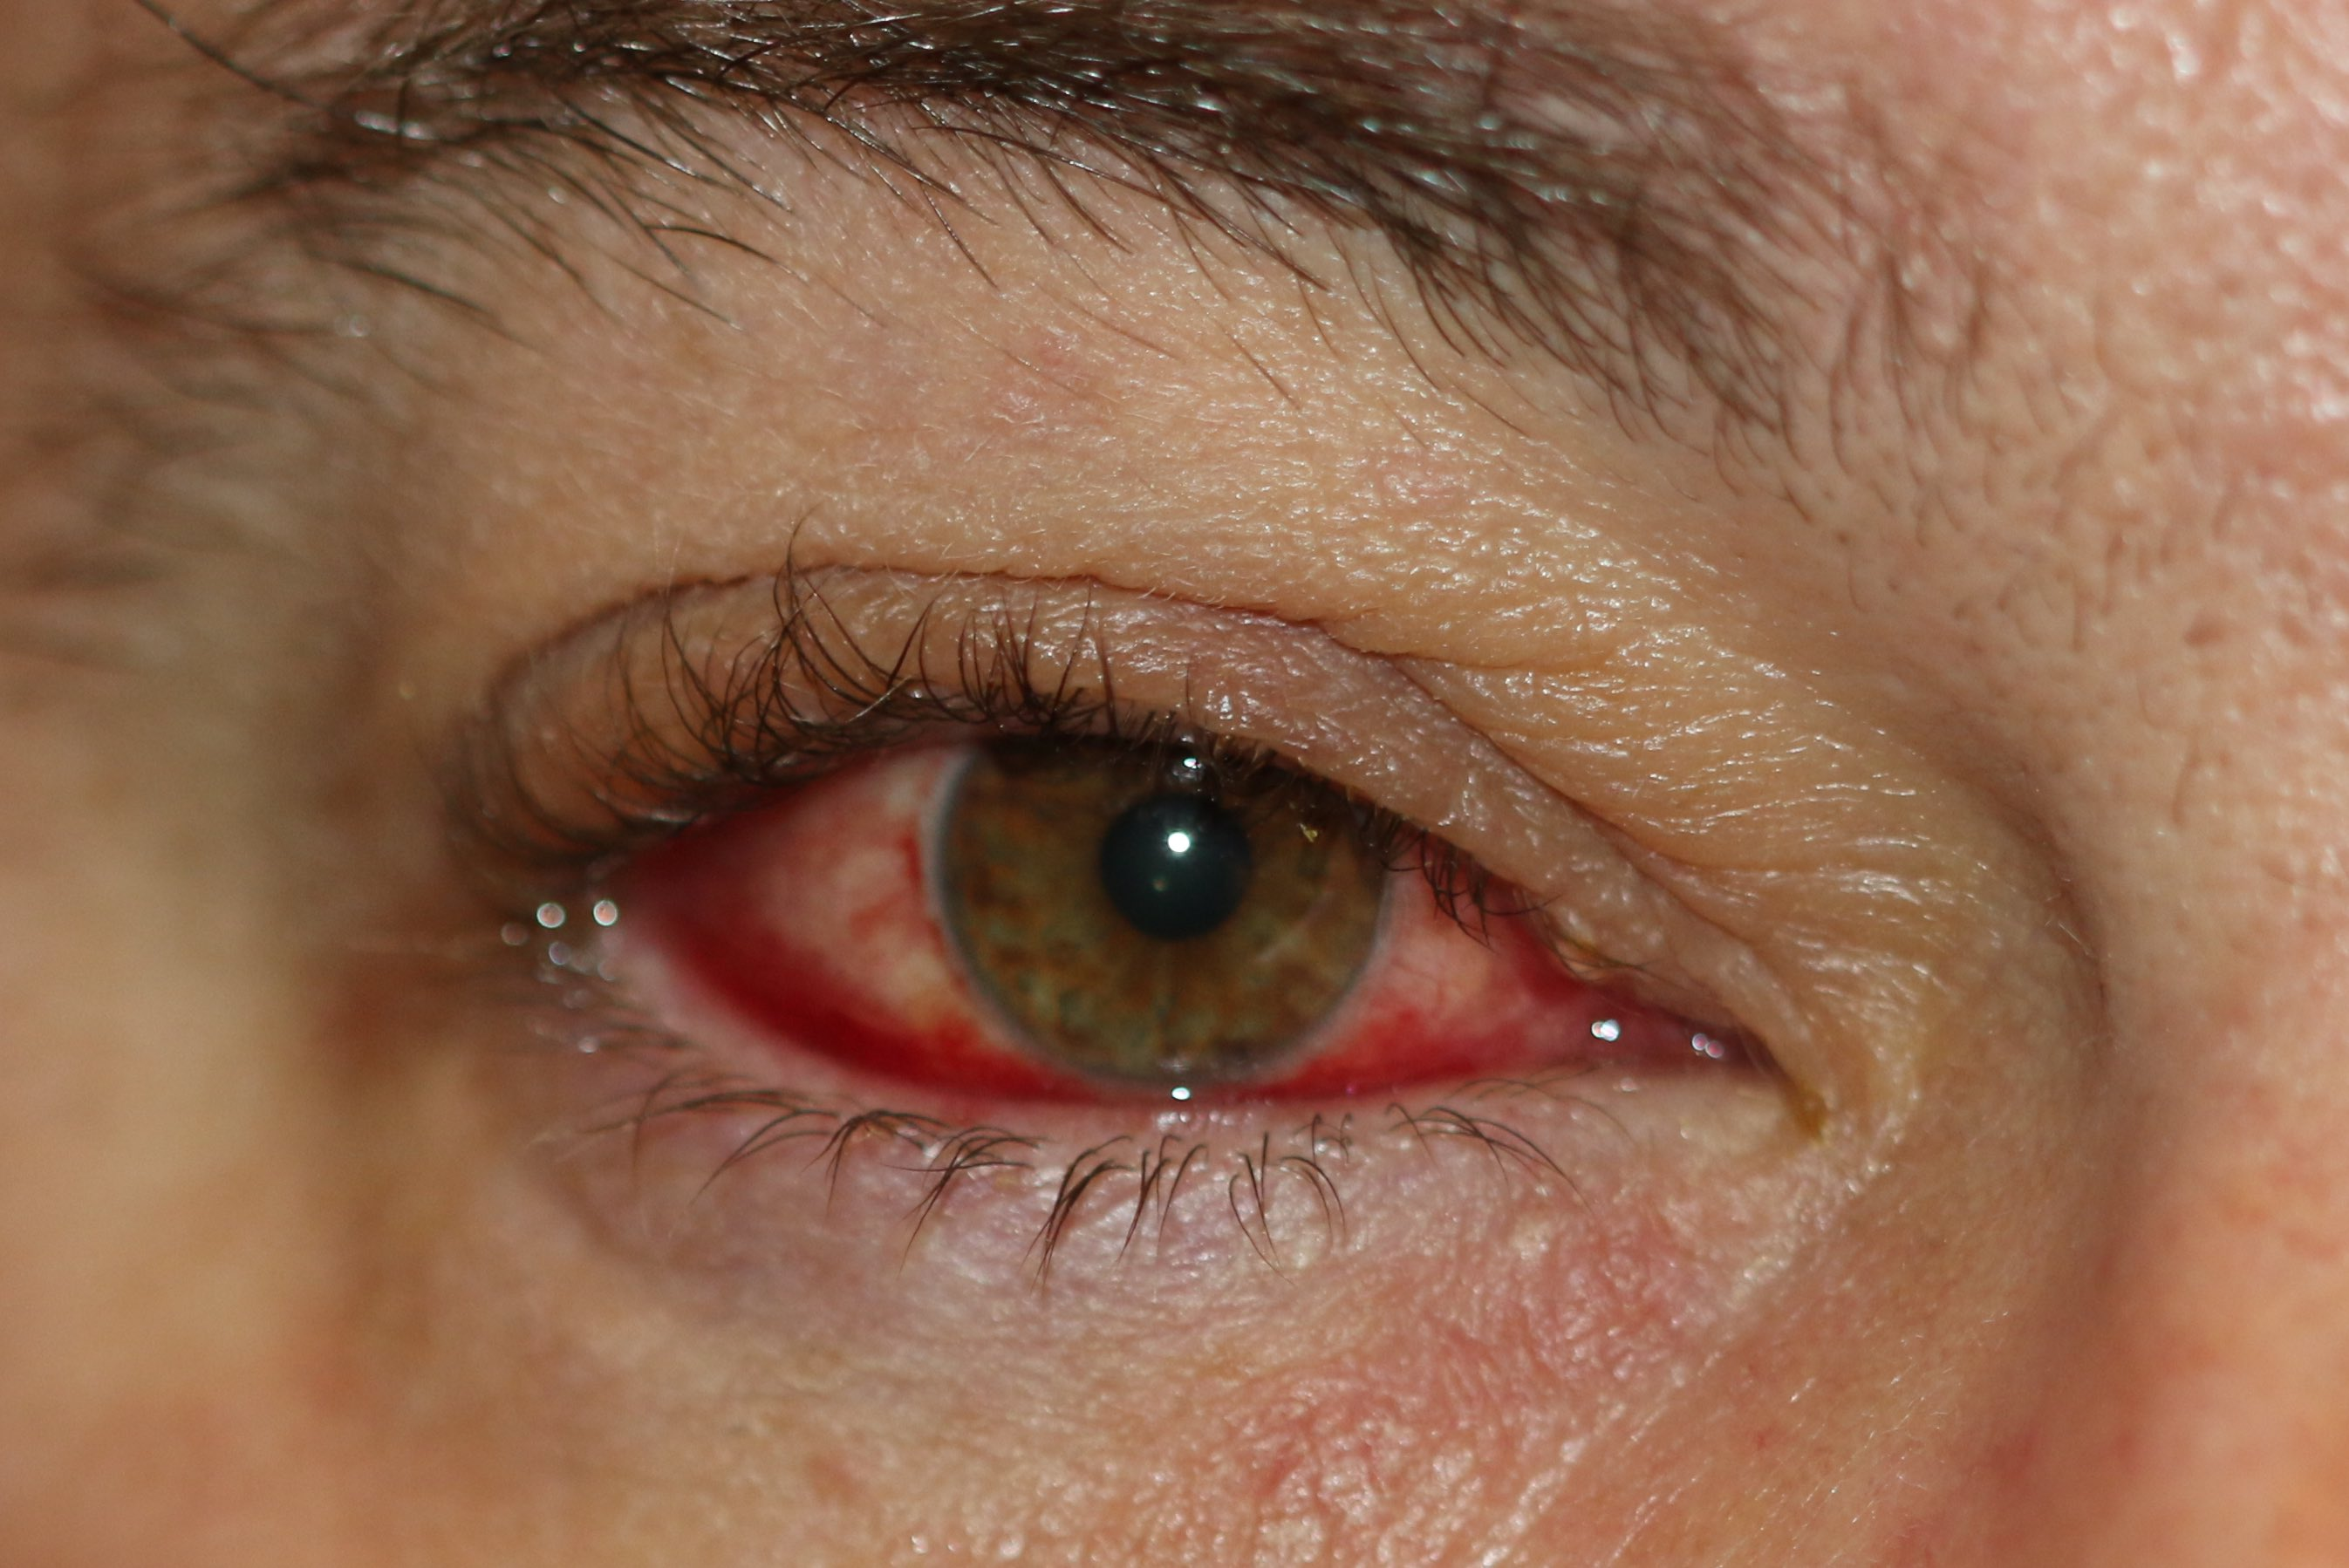 Blepharoconjunctivitis with inflammation of the eyelid margin and conjunctiva